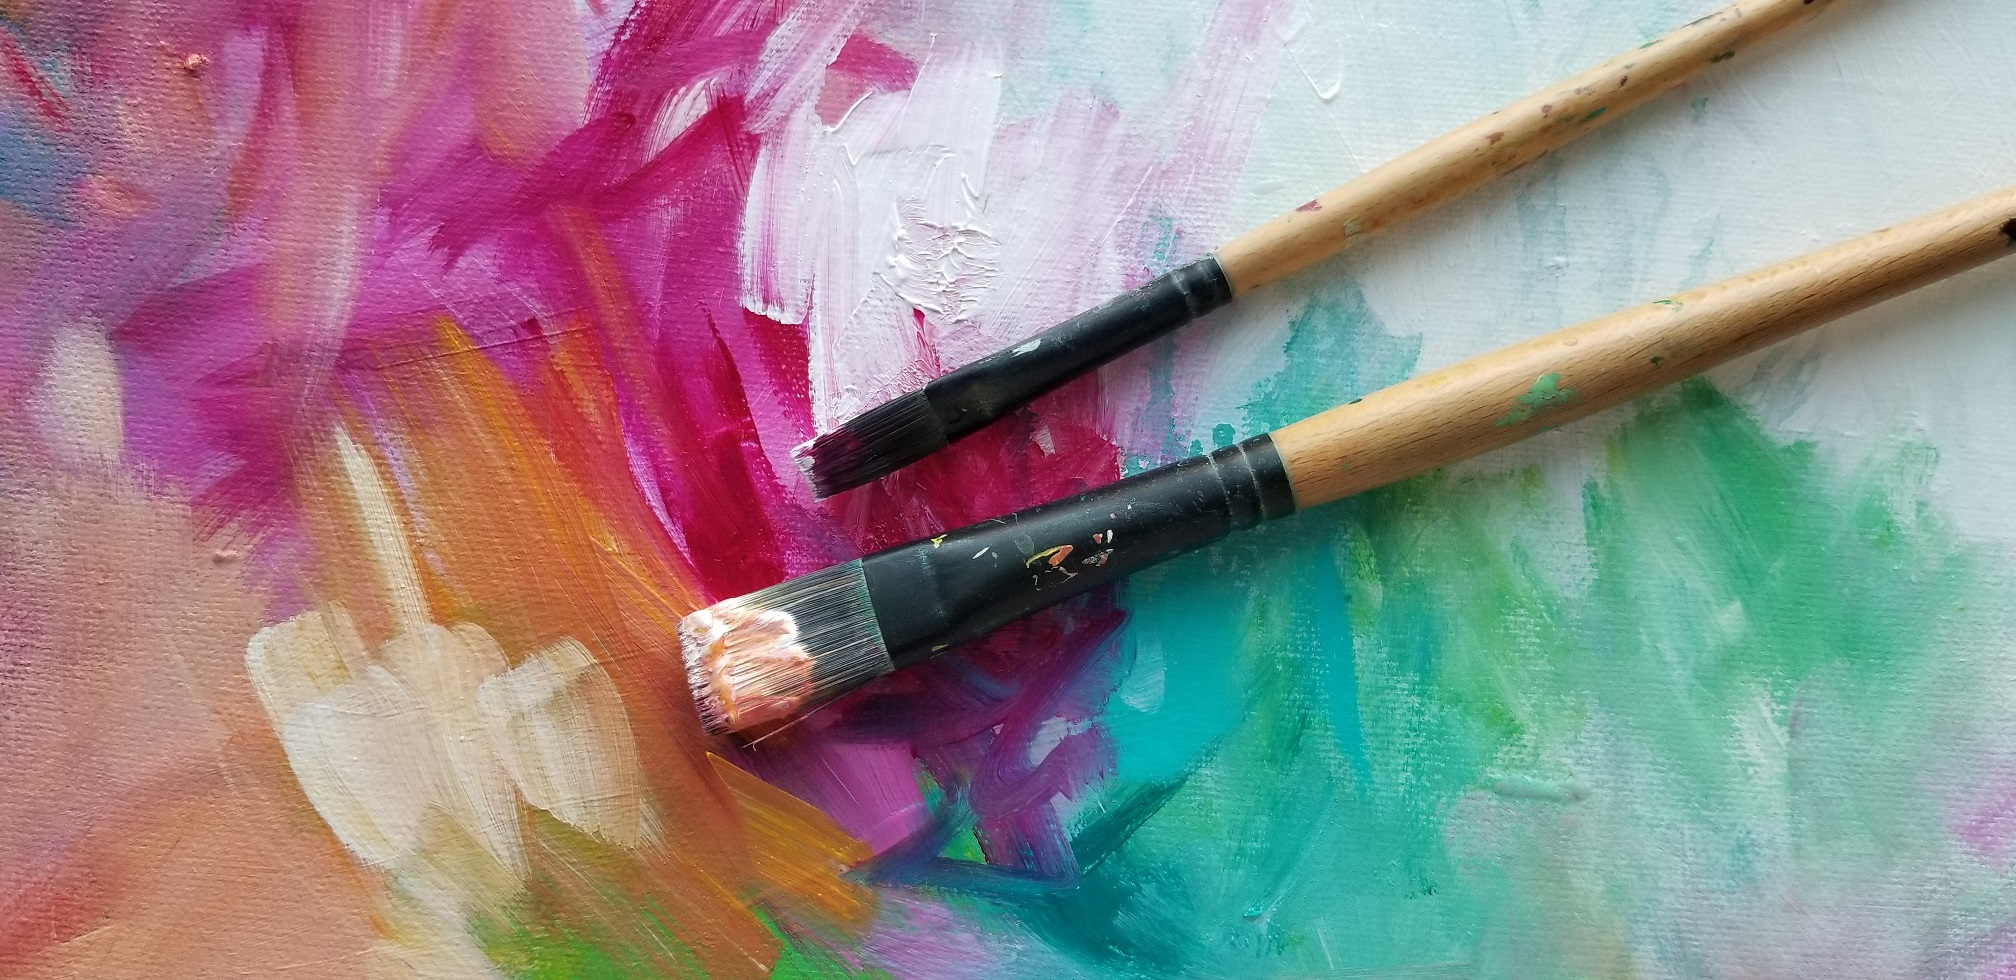 Abstract Brushstrokes Workshop True Colors with Kellee Wynne Conrad 1 (9) small.jpg